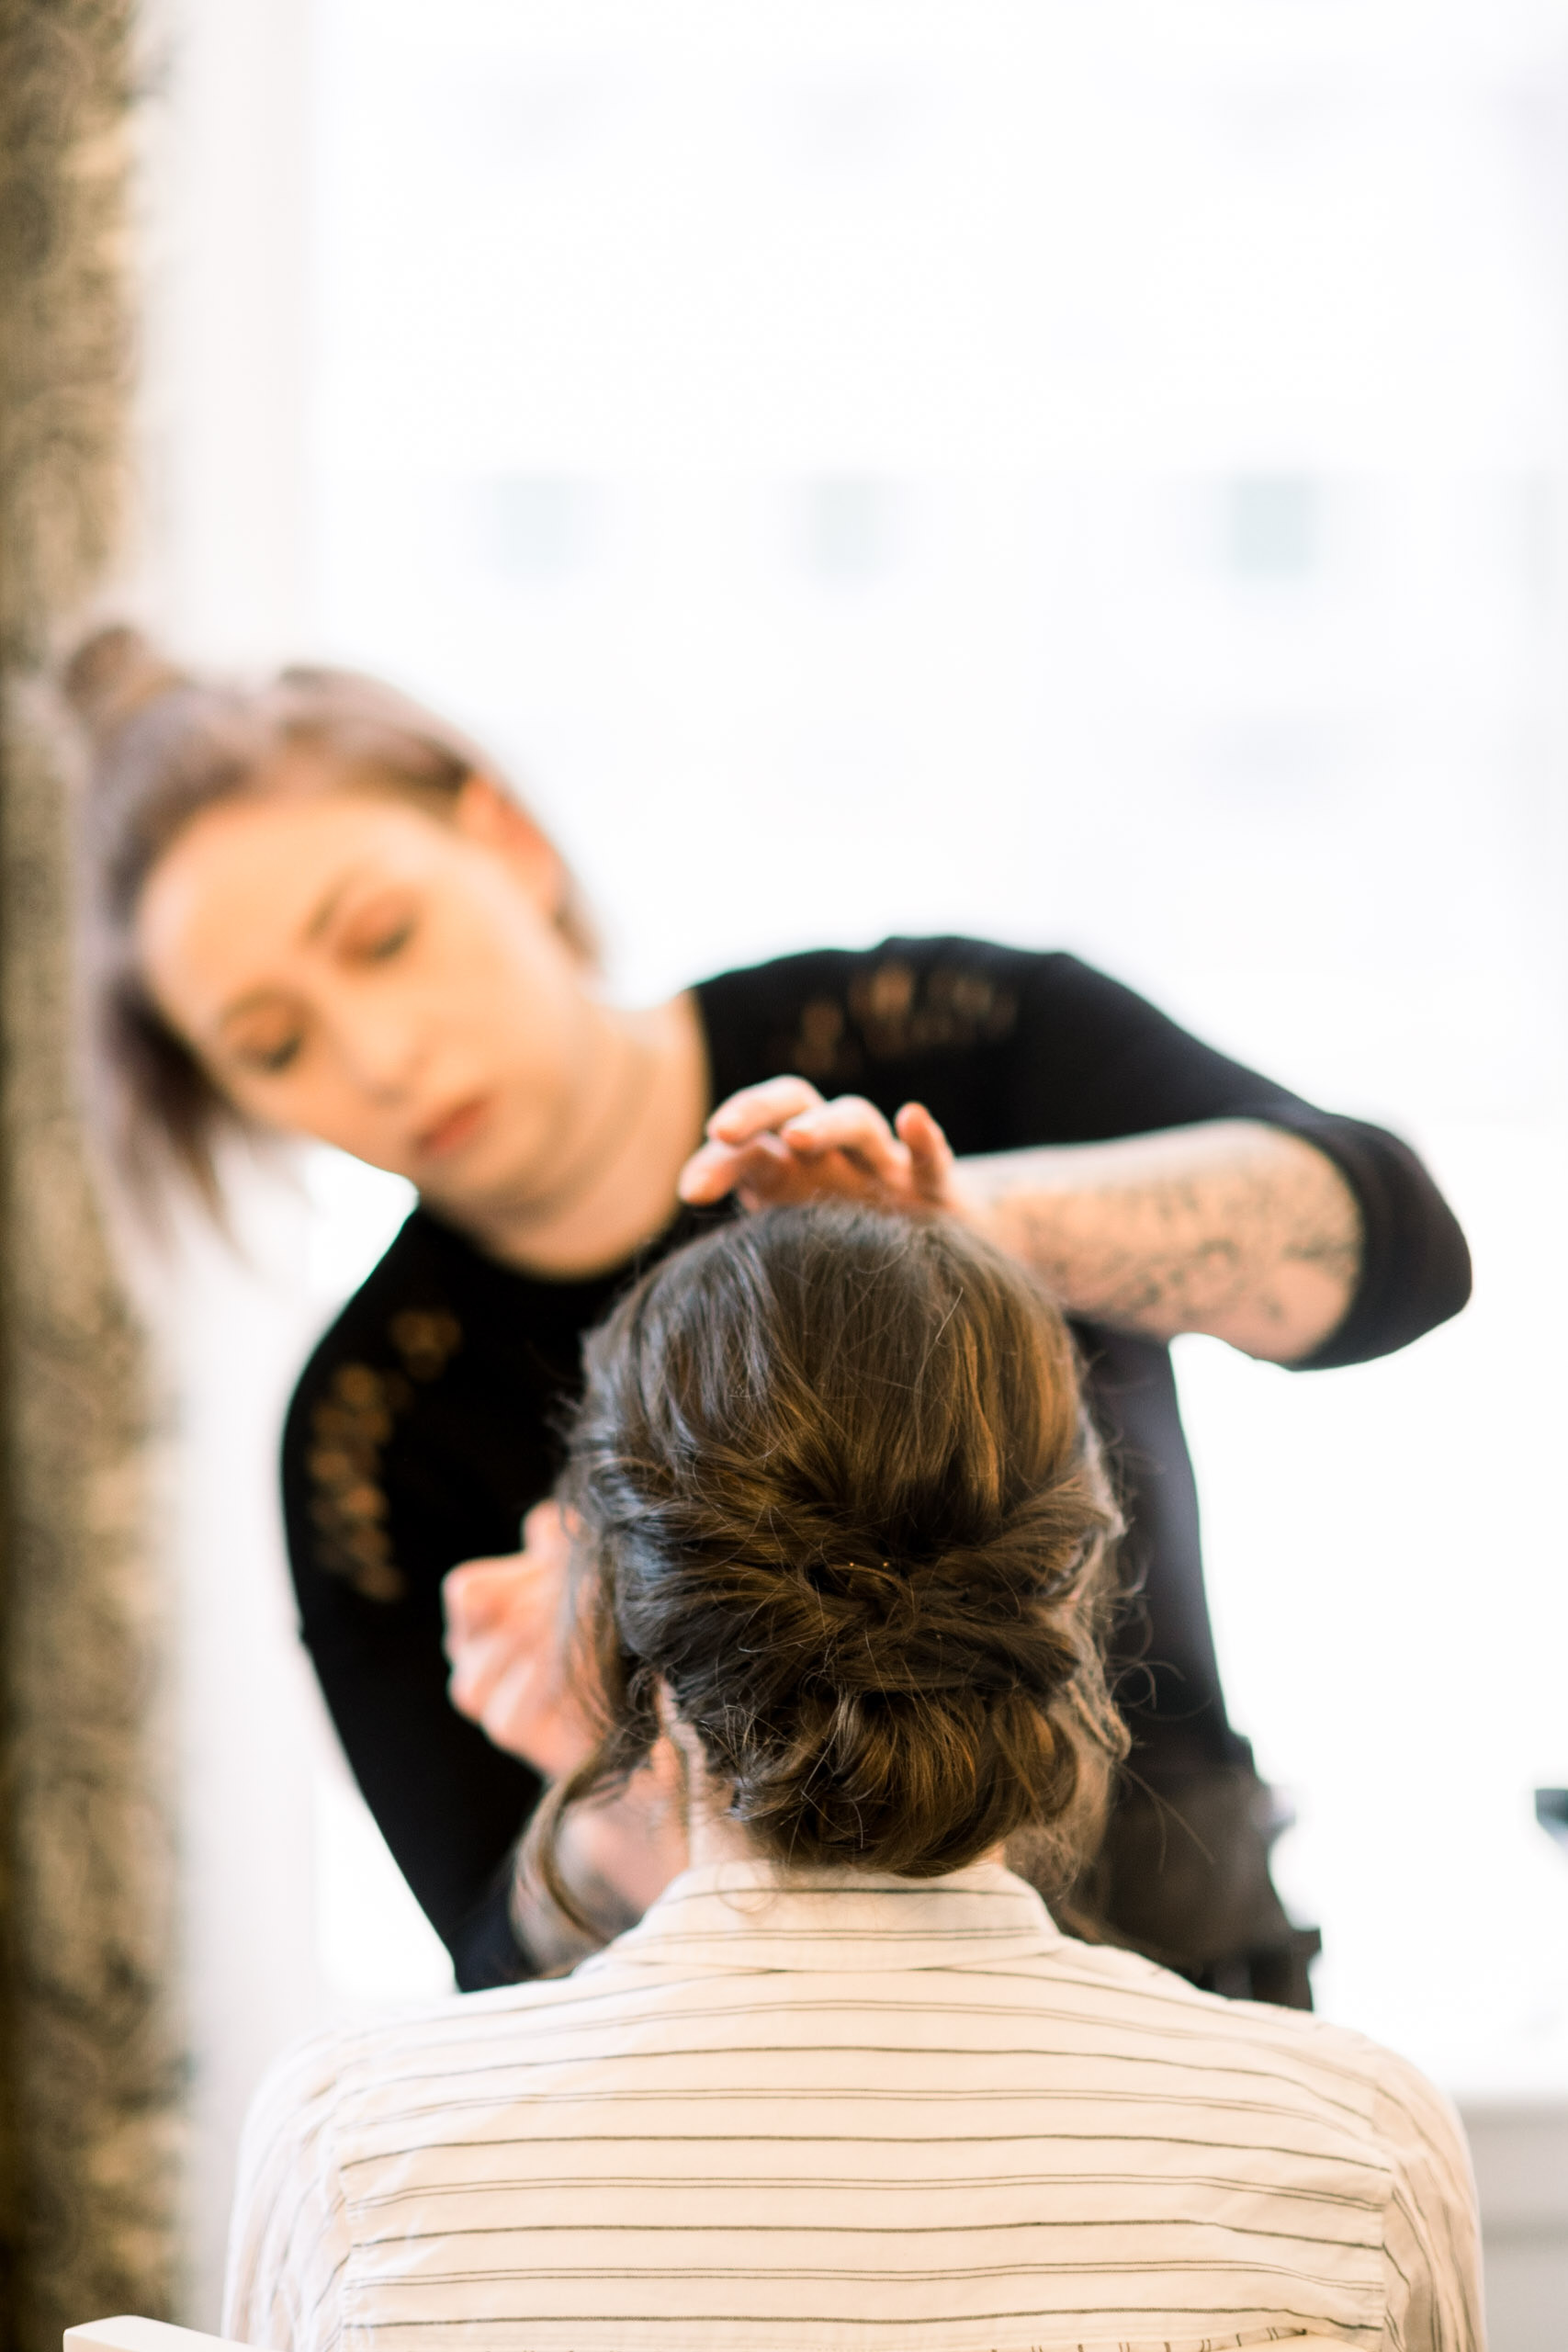 Bride's wedding updo  for Pittsburgh wedding at Hotel Monaco planned by Exhale Events. Find more modern wedding ideas at exhale-events.com!